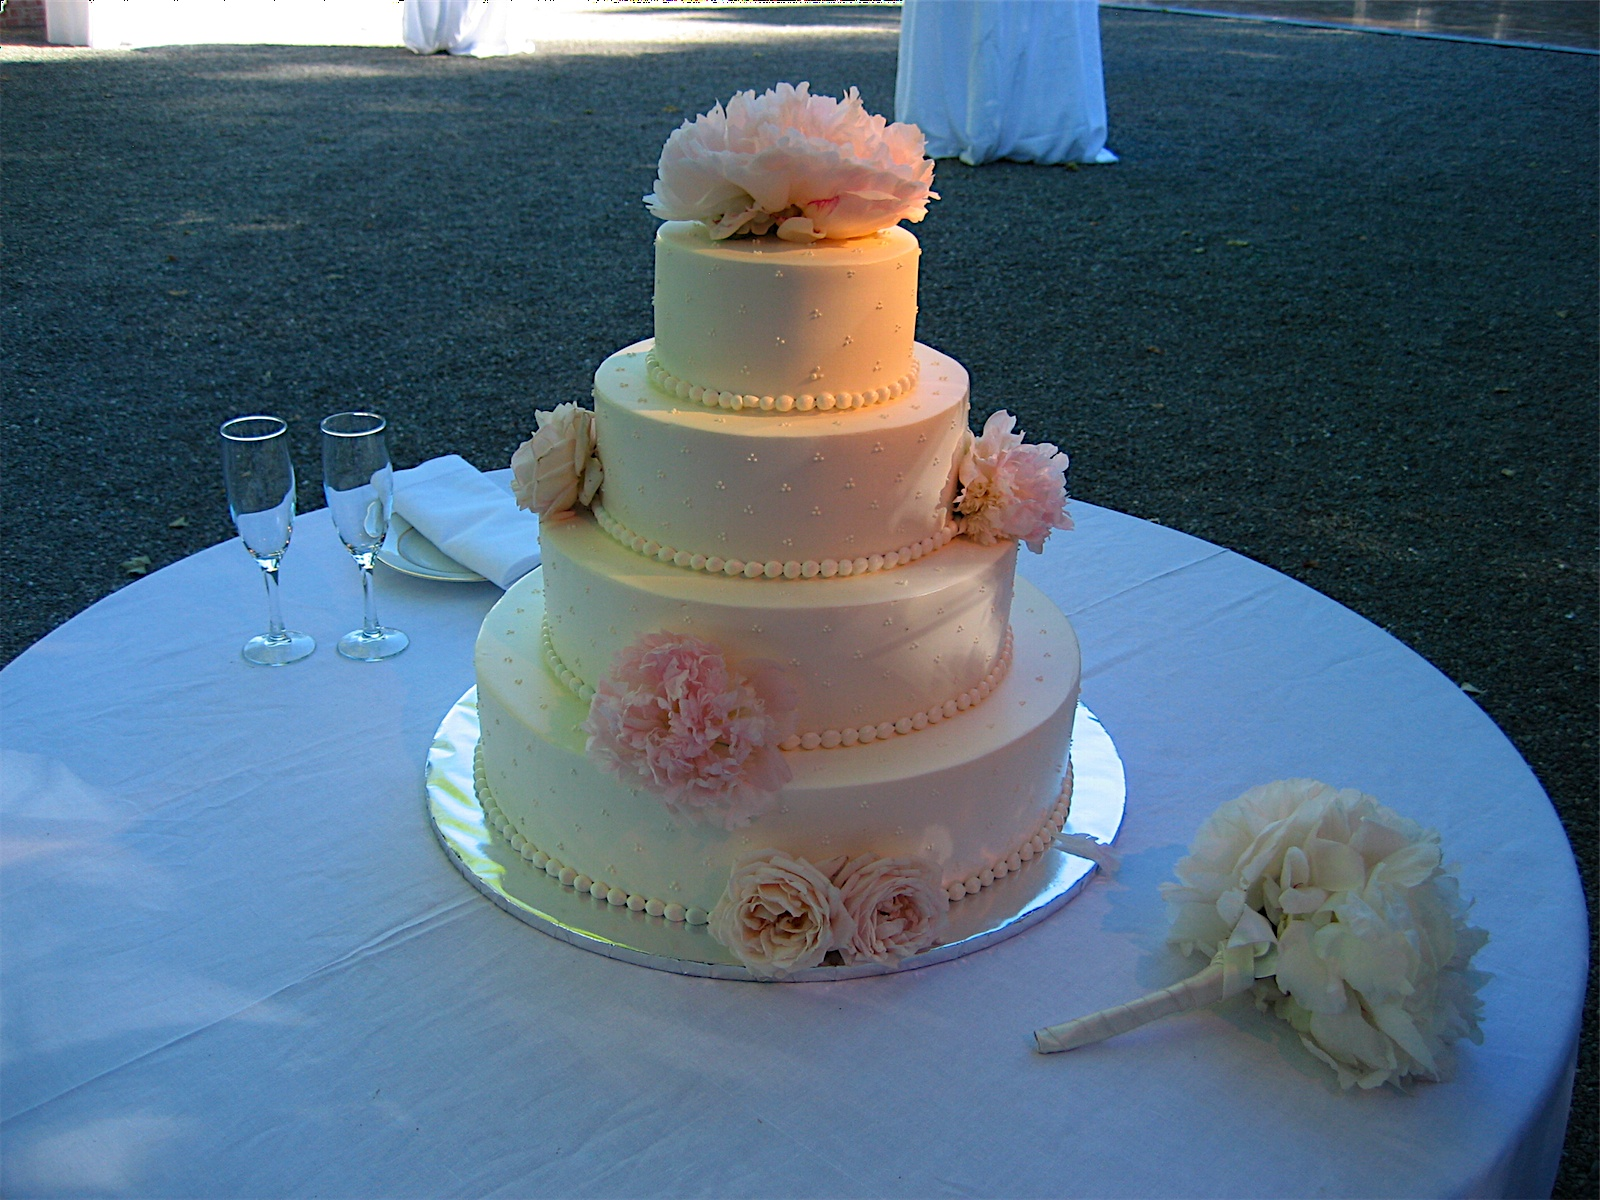 Swiss wedding cakes new orleans